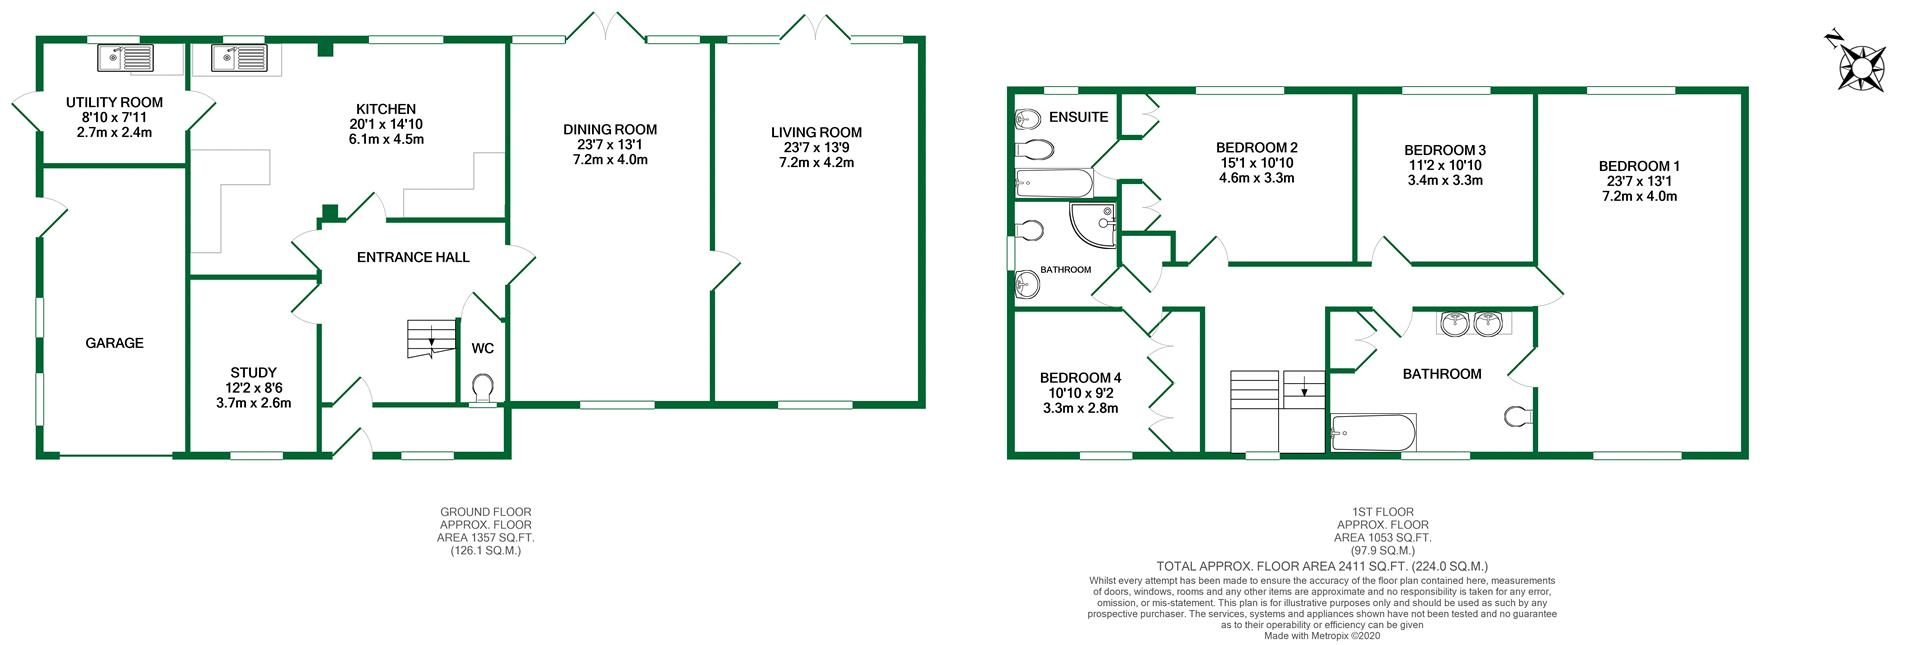 Floorplans For Wargrave Road, Twyford, Reading